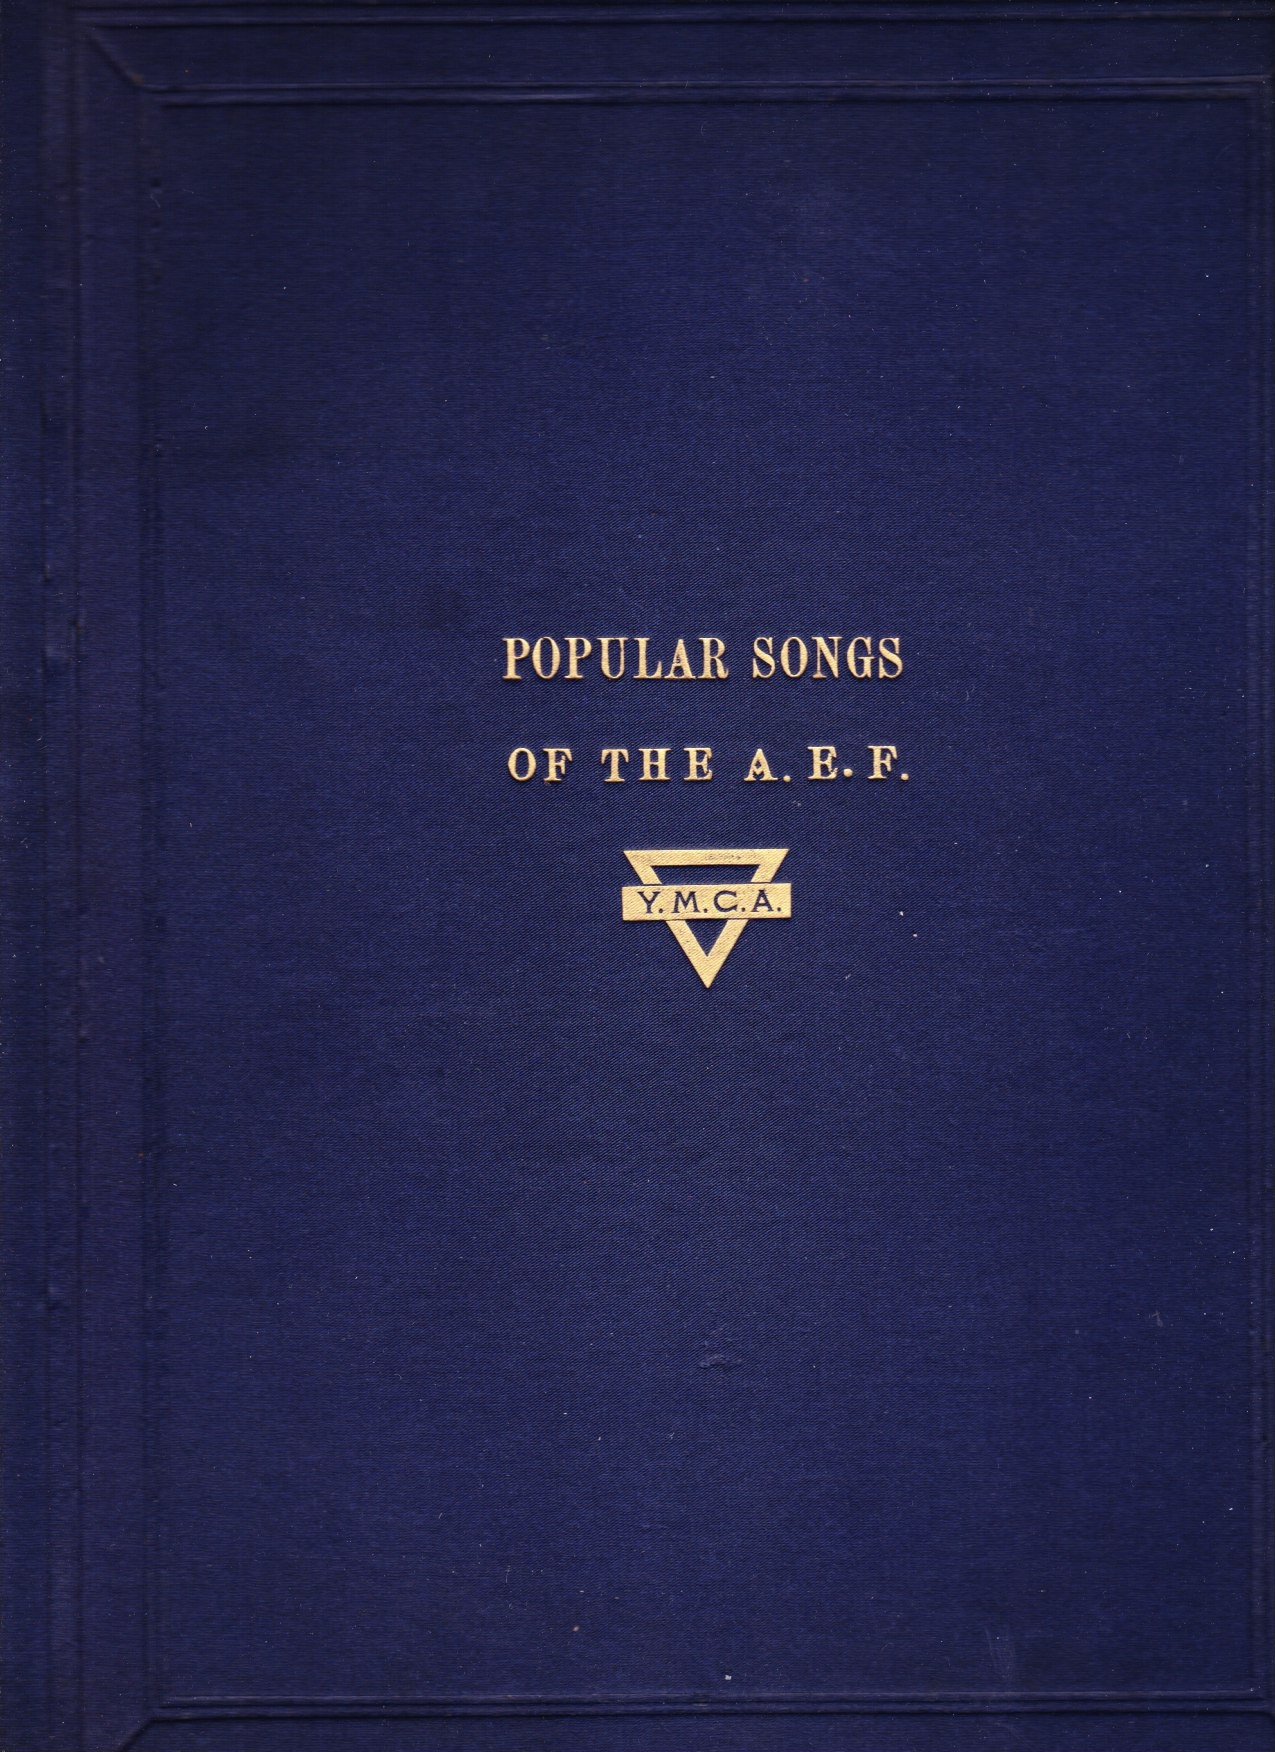 Image for Popular Songs of the A. E. F. Compiled for Use in the Huts of the YMCA by the Bureau of Libraries and Periodicals